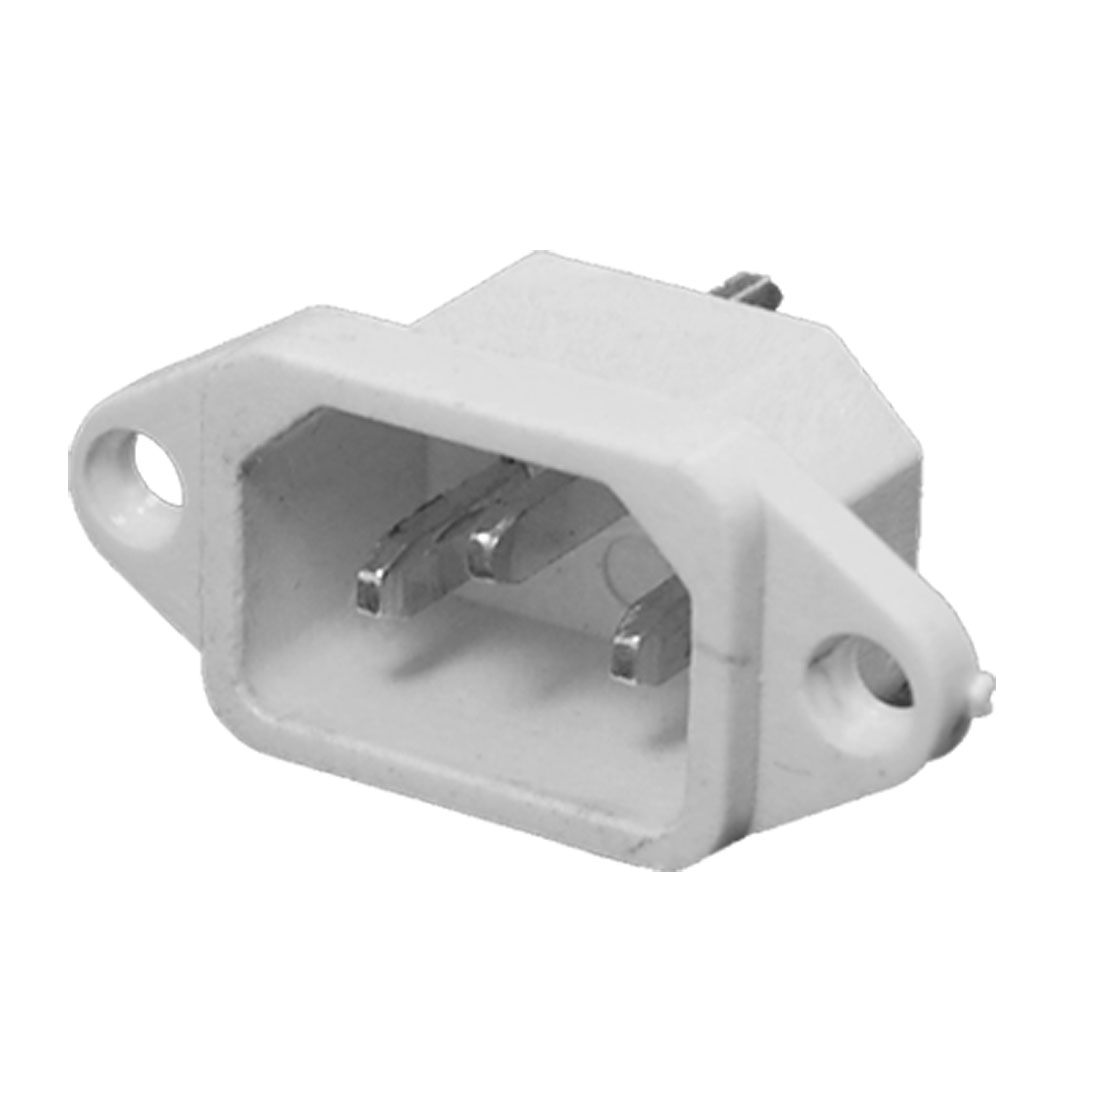 10A 250V UK Electrical Cooker Plug Replacement White